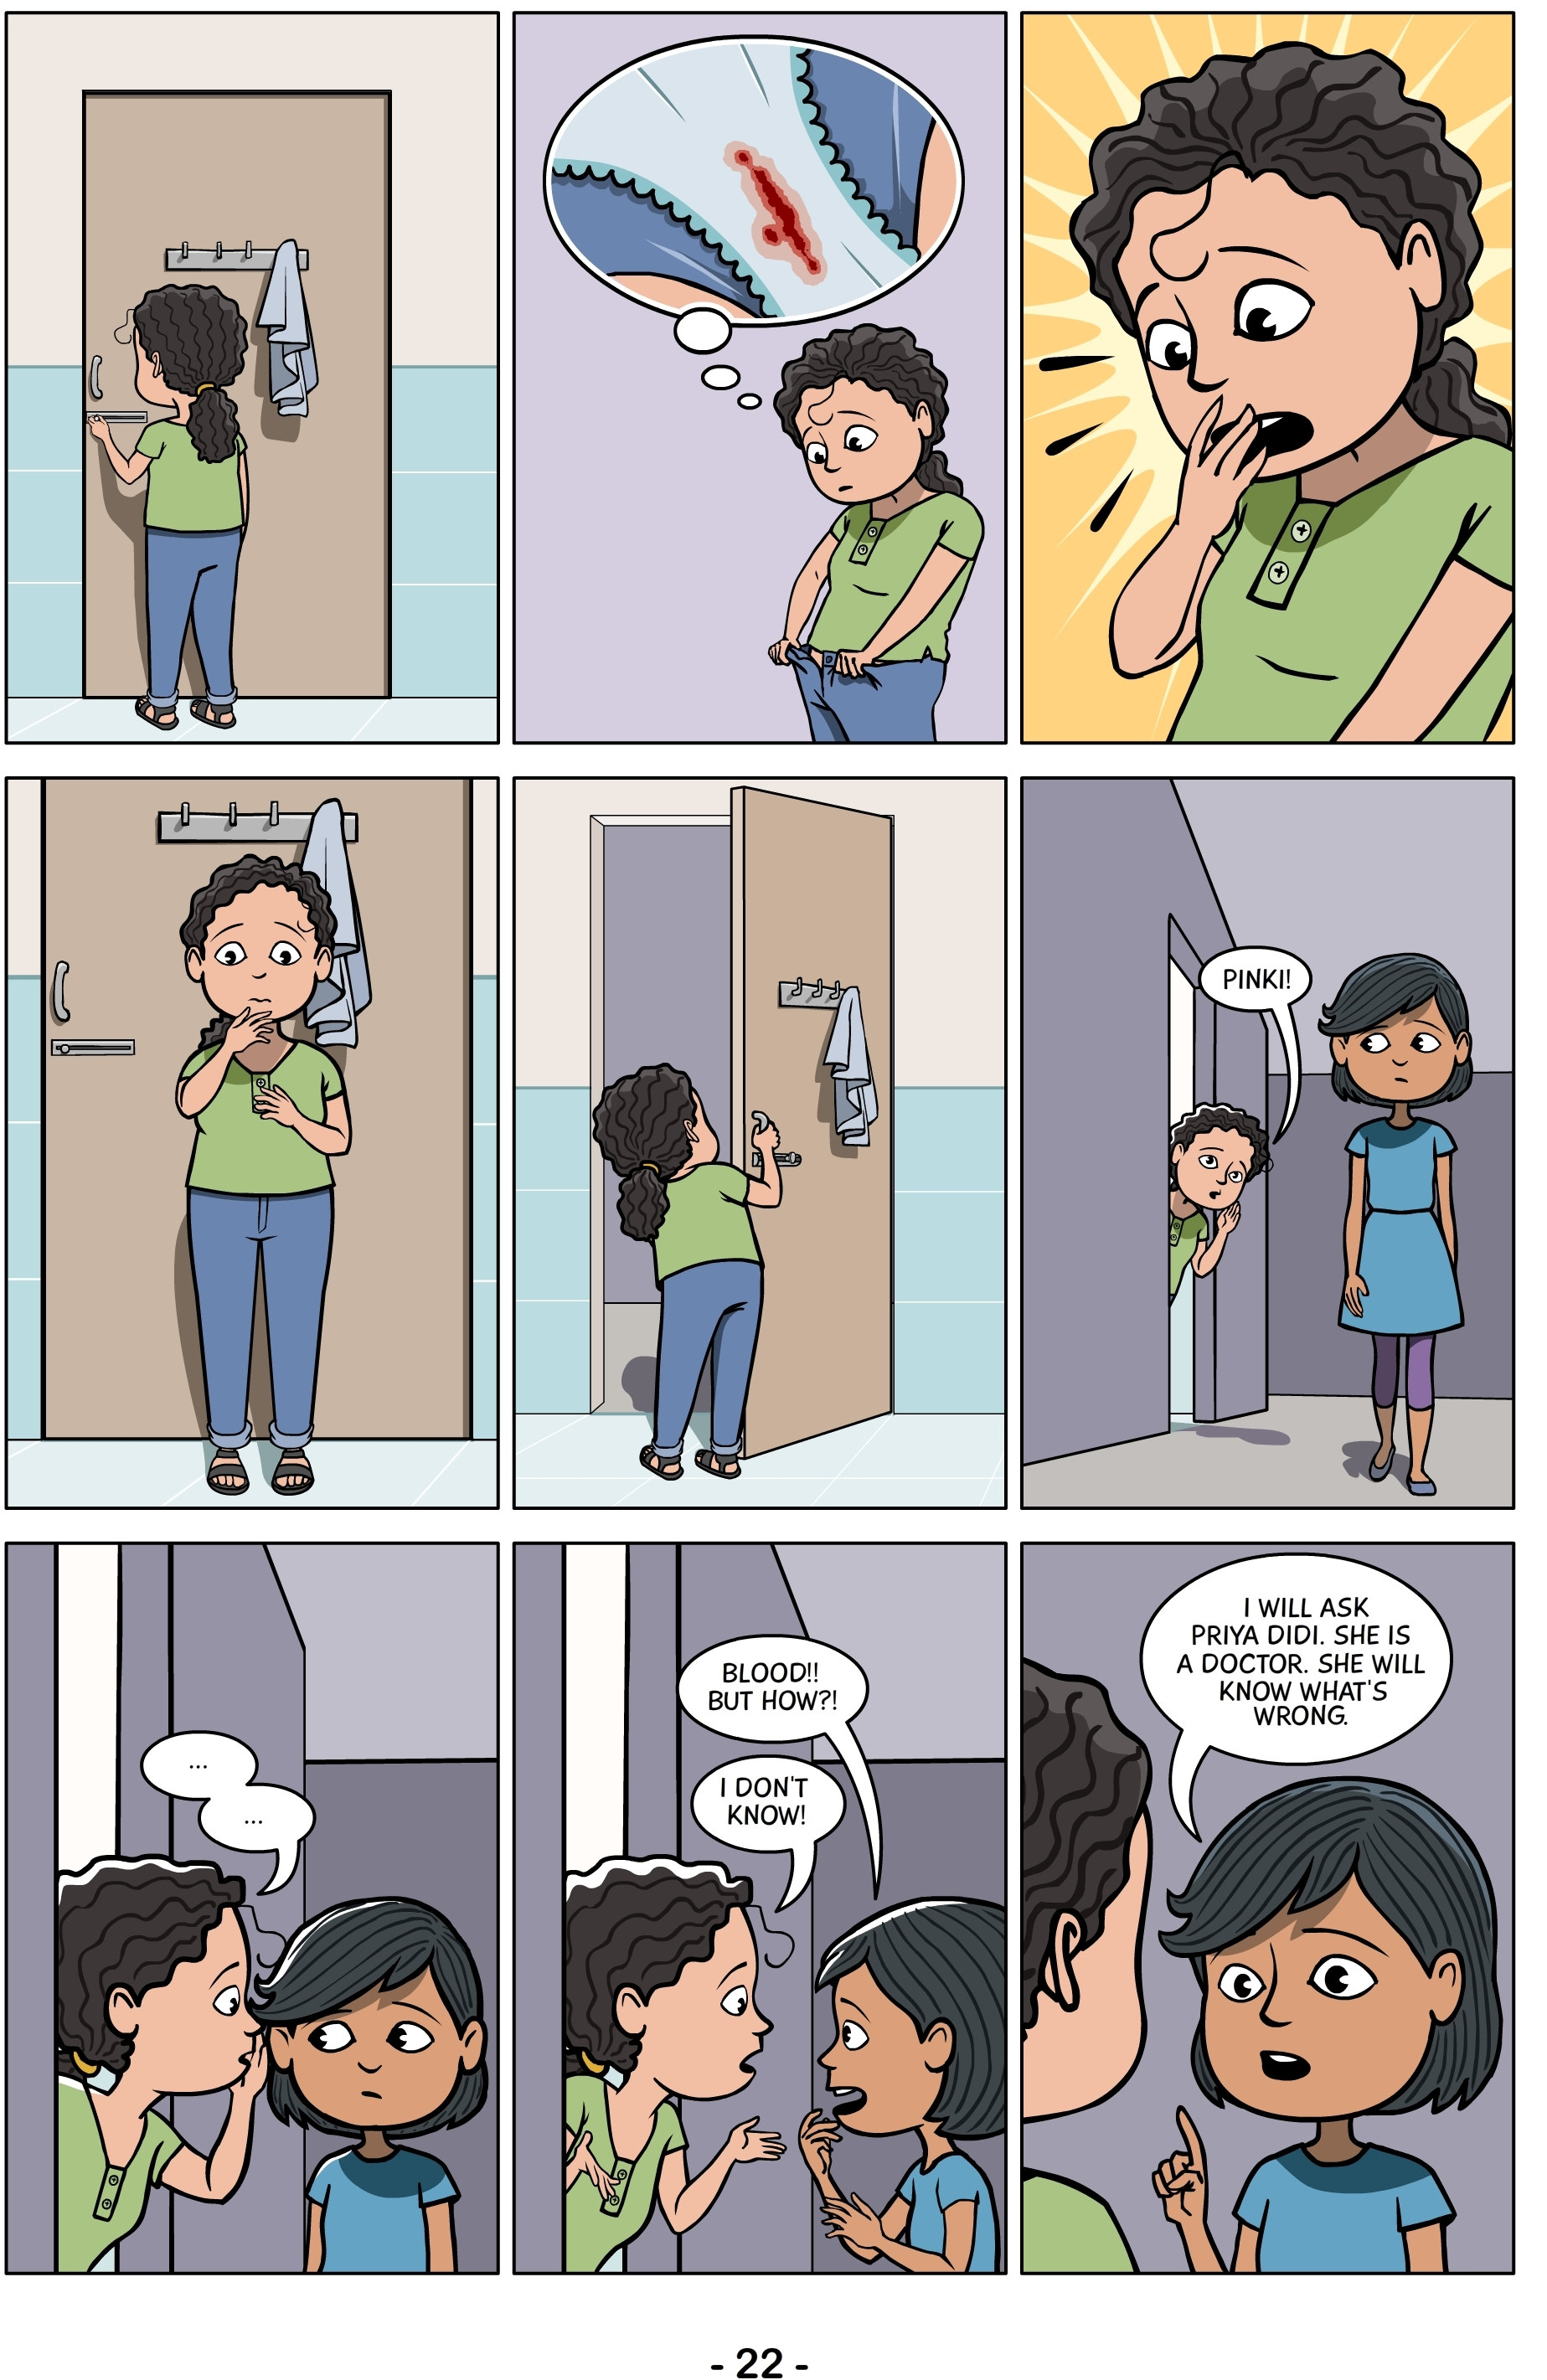 The Indian Comic Book That's Taking on the Taboo of Periods.